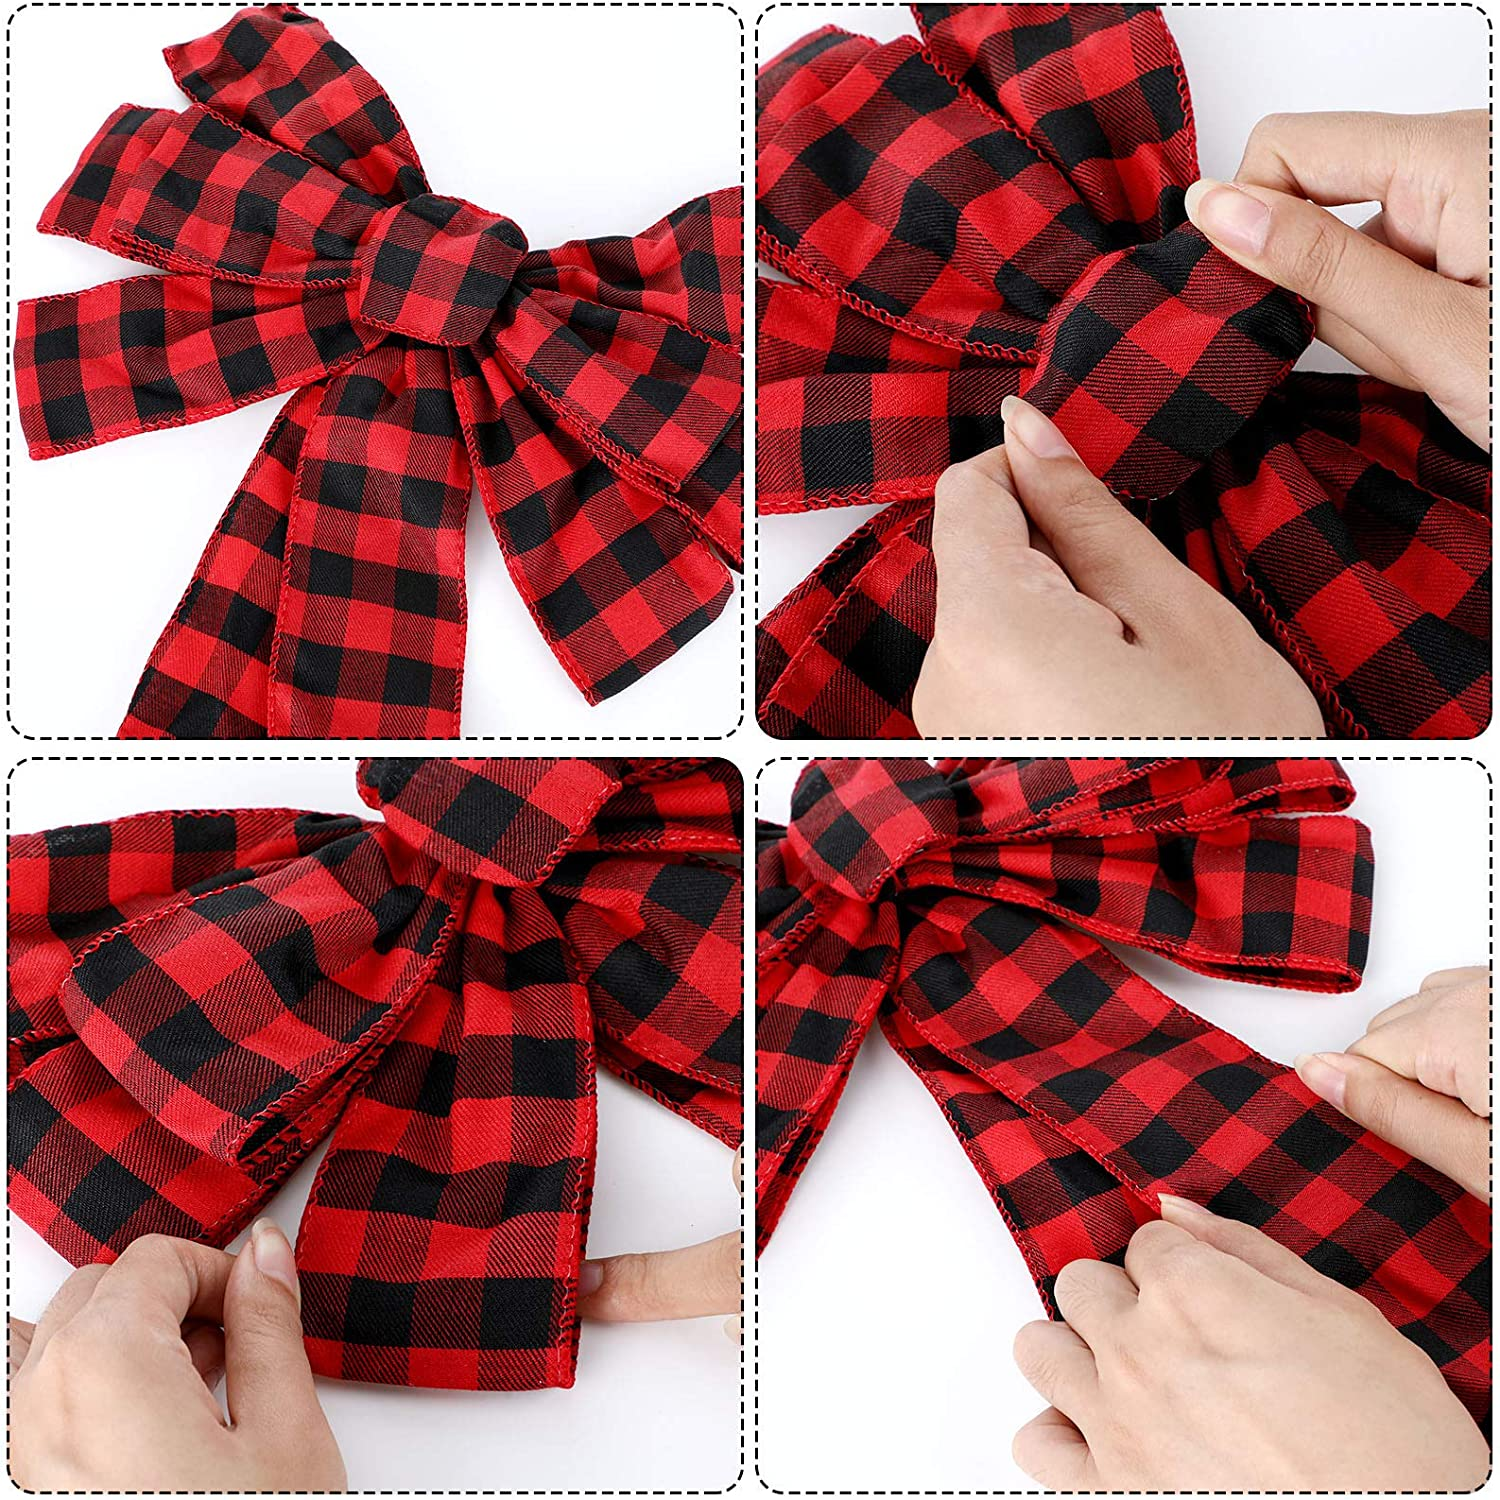 Red and Black Plaid 6 Pieces Buffalo Plaid Bow Halloween Christmas Wreath Bow 10 Inch Thanksgiving Fall Bows for Christmas Tree Holiday Decorations